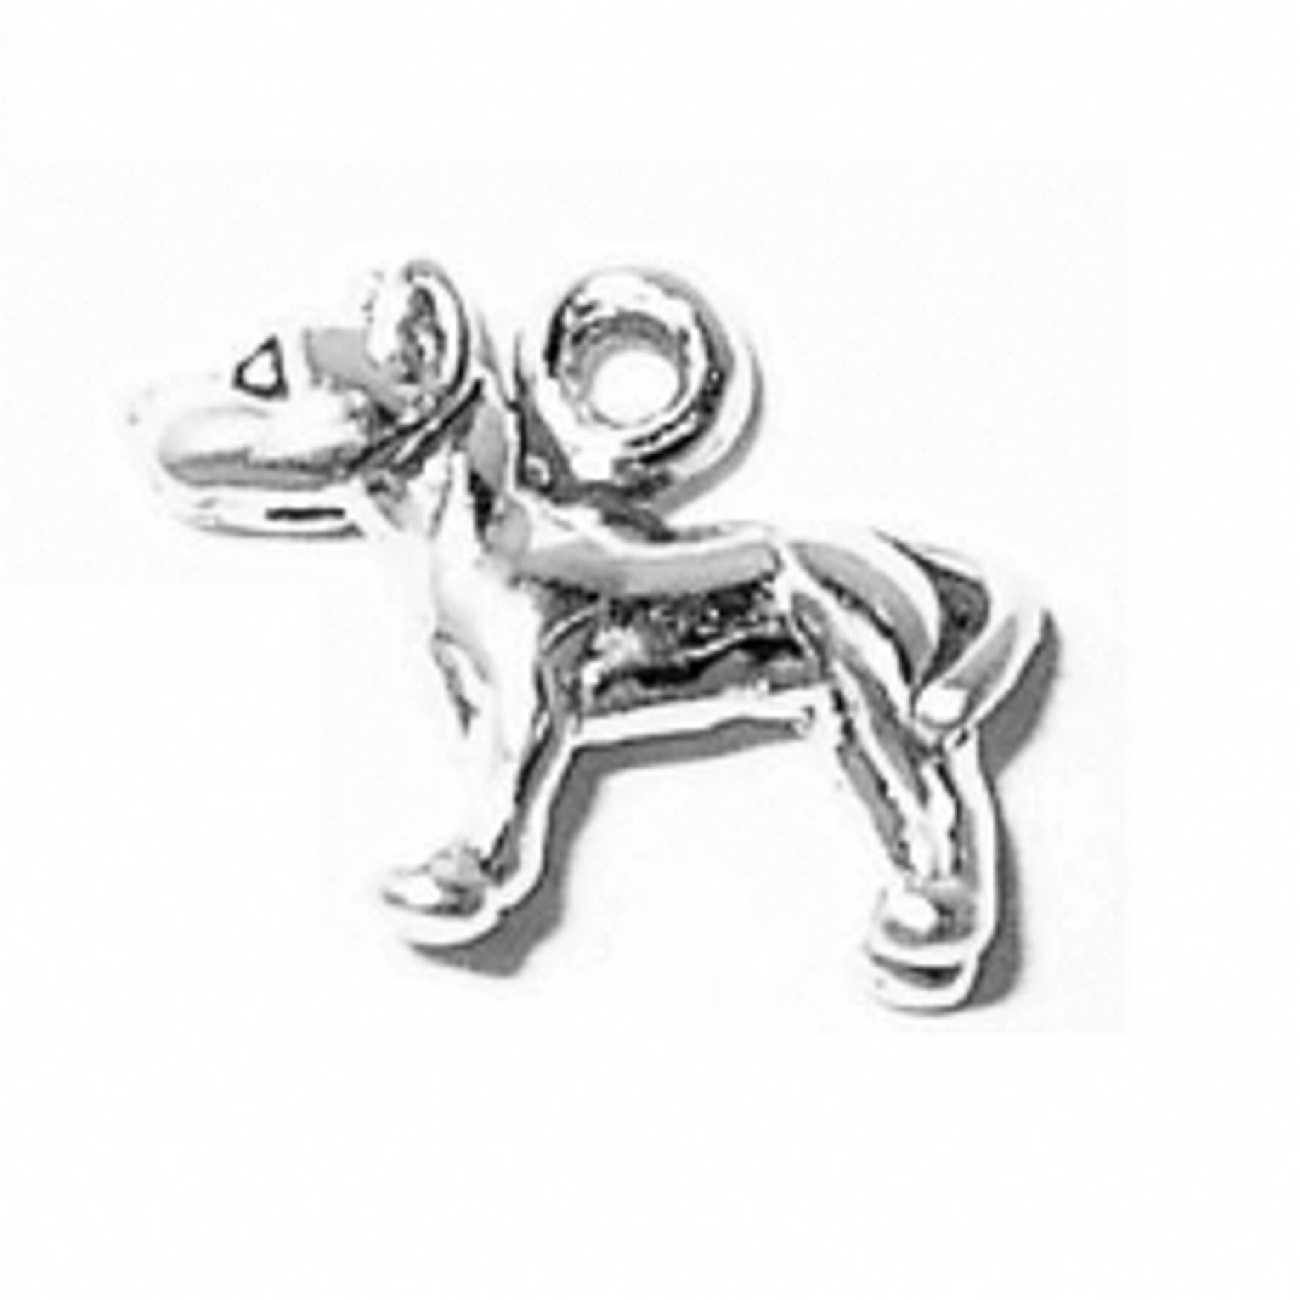 3D Standing Pitbull Dog Breed Charm